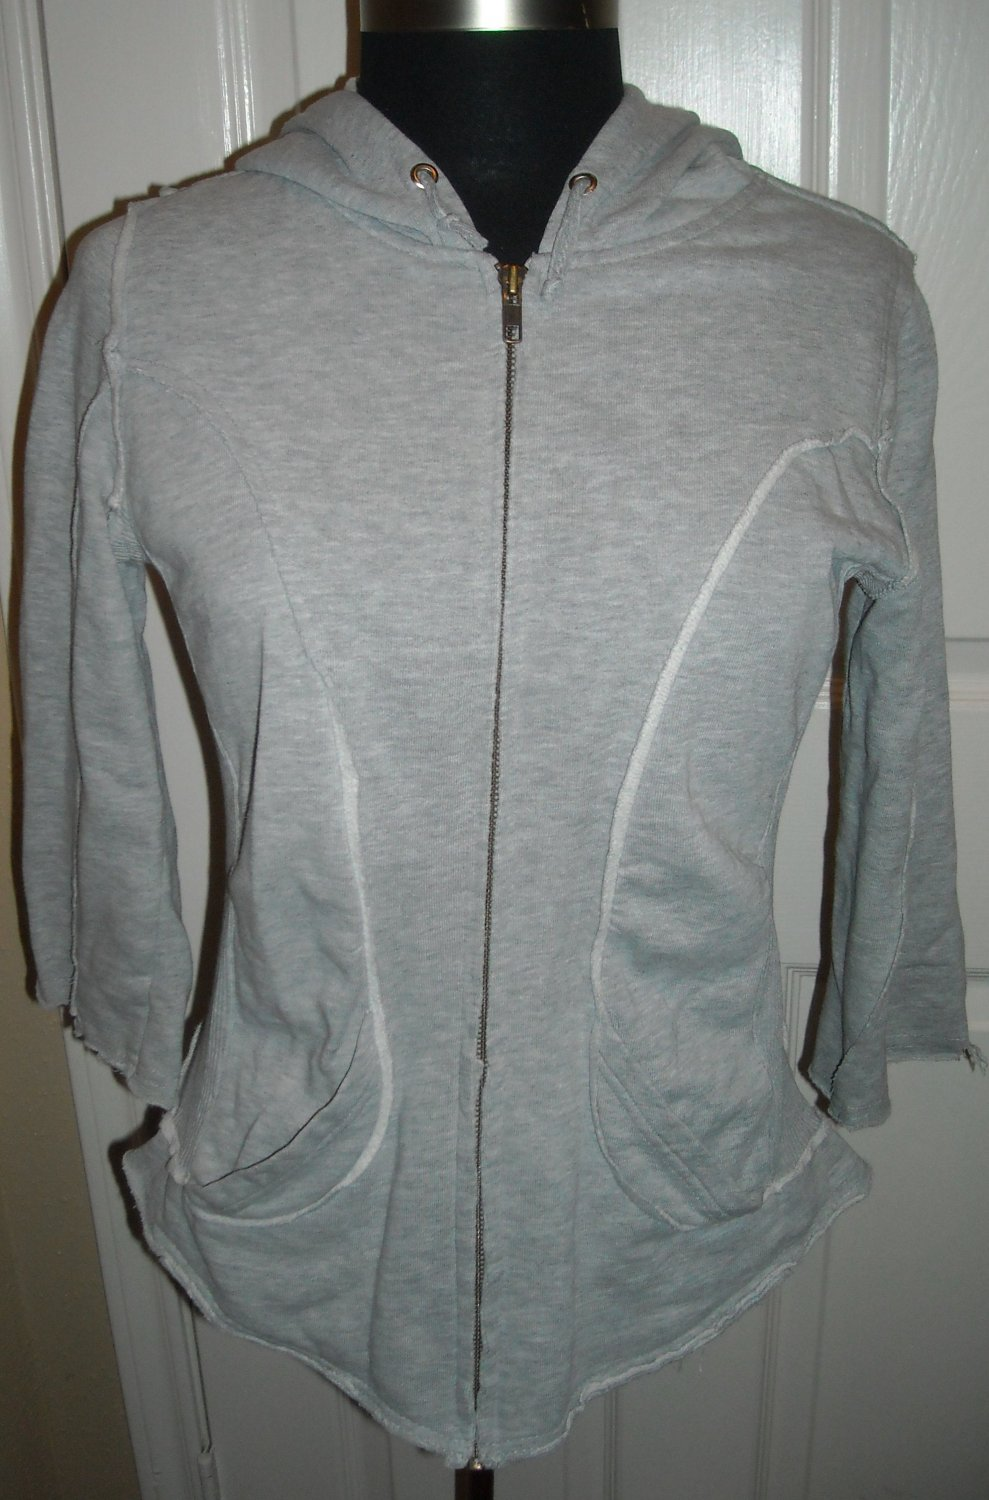 FREE PEOPLE PATTERN PIECED ZIP UP HOODIE SIZE M (NEW)